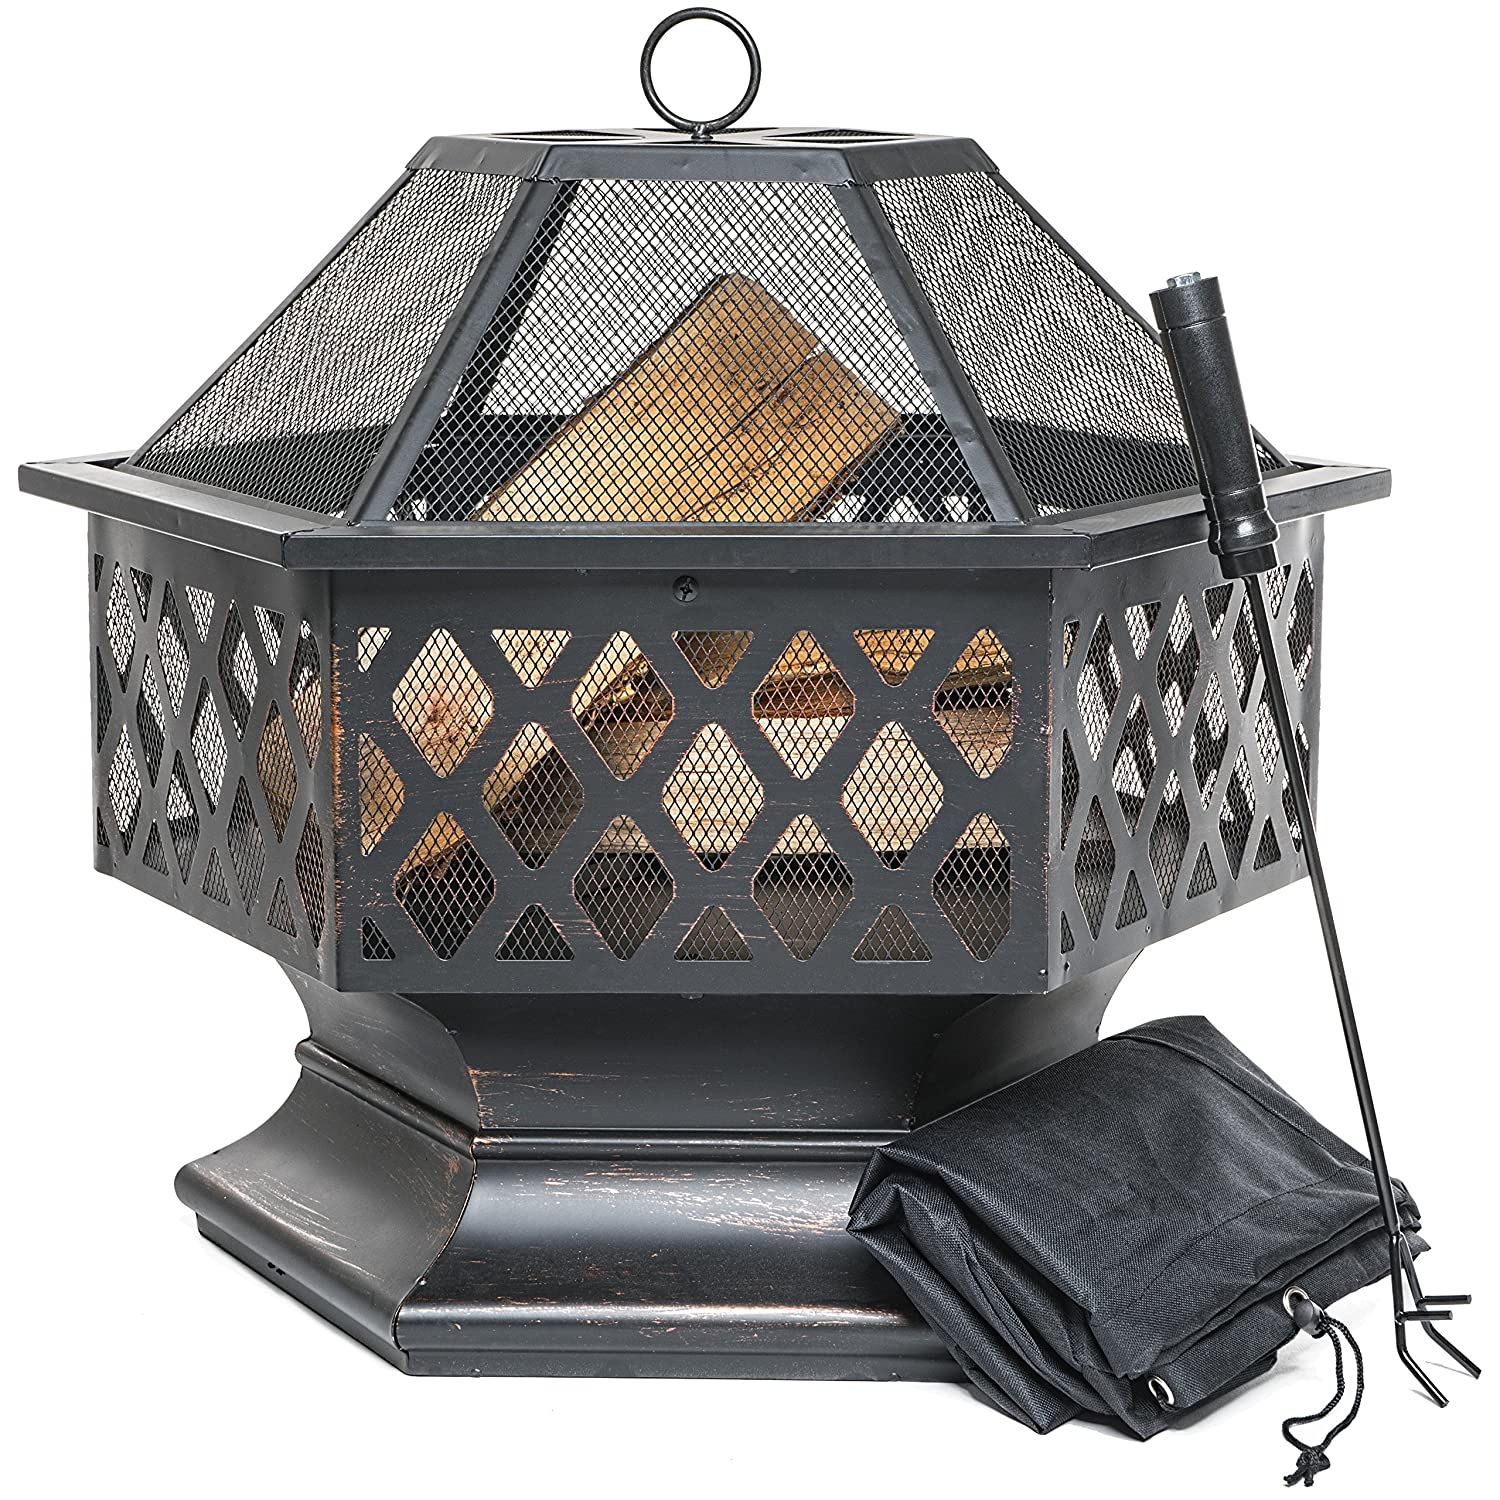 Outdoor Fire Pit for Garden and Patio, Large Hexagonal Fire Bowl; Includes Spark Guard, Poker and Protective Cover; Black and Bronze; 61 cm Width, 65 cm High - Foyer Extérieur Prime Selection Products